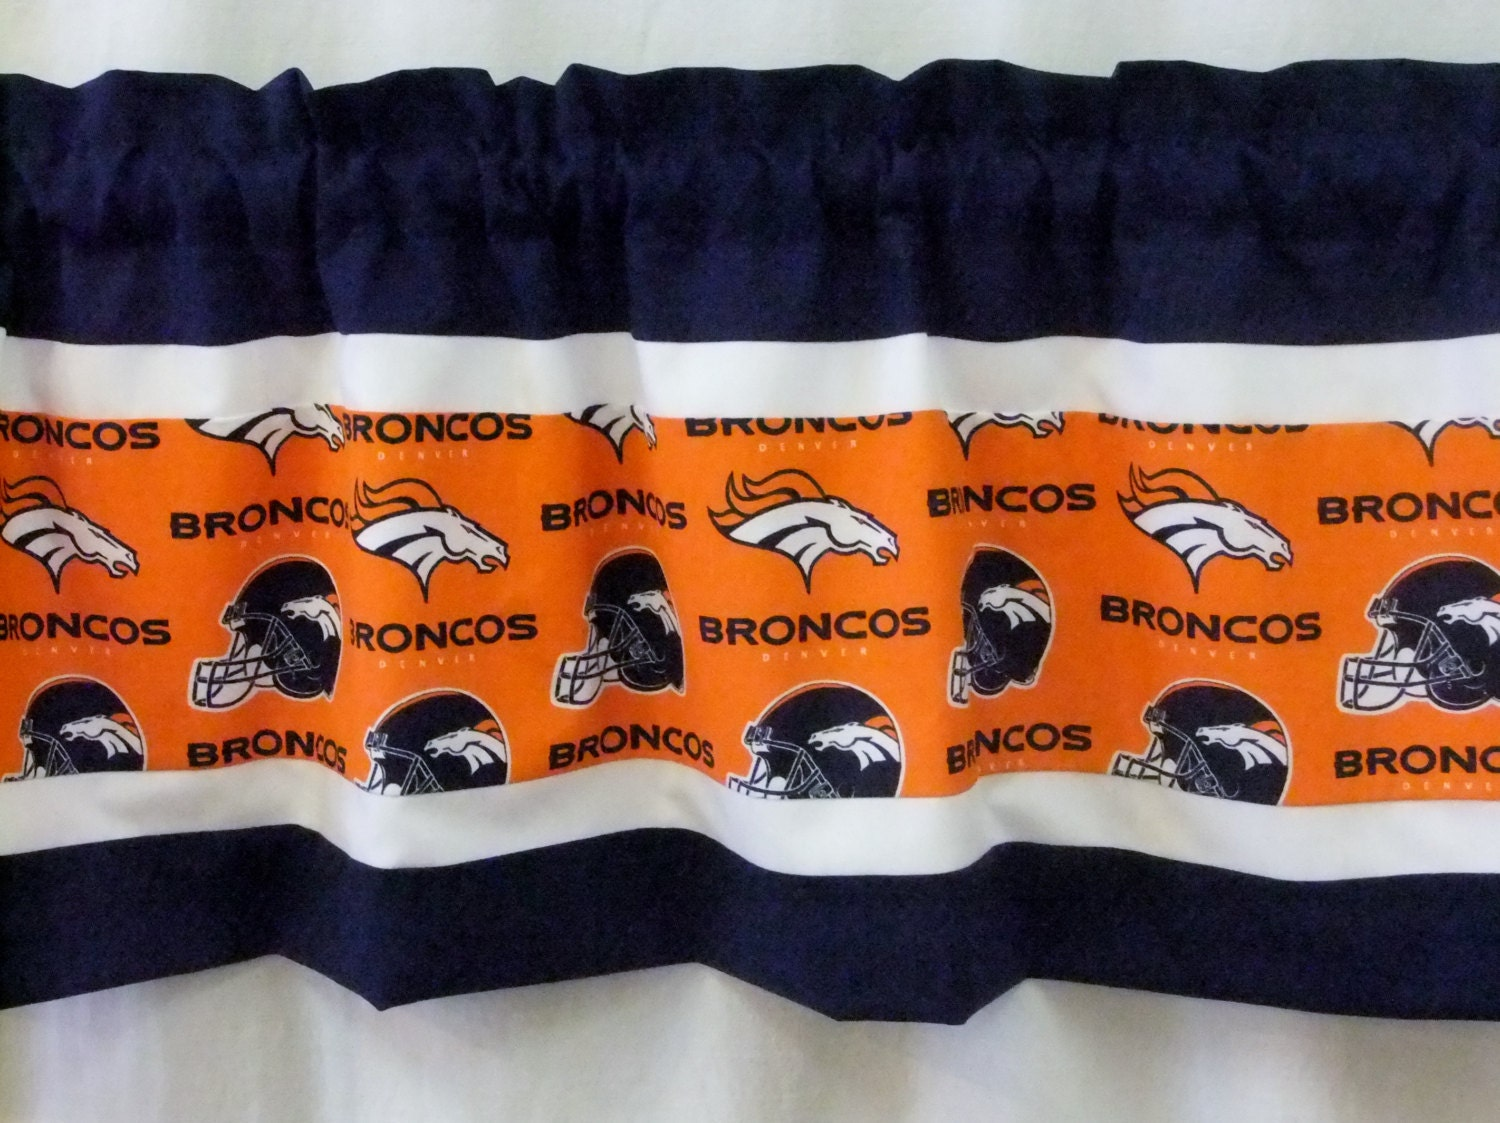 Broncos shower curtain